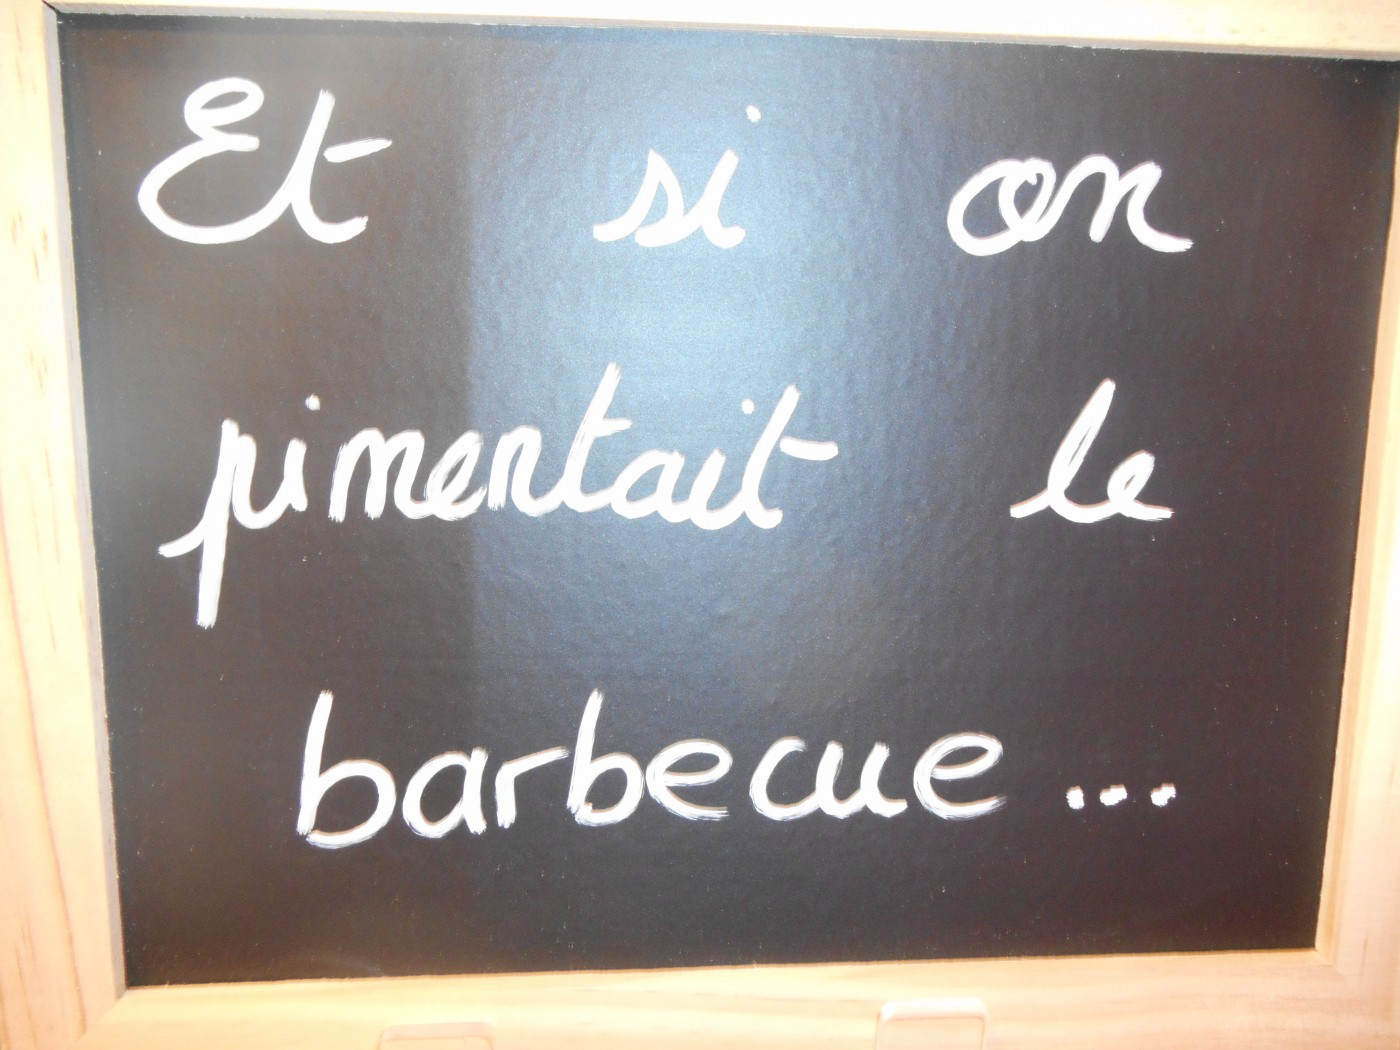 Ce weekend c'est barbecue!!!!